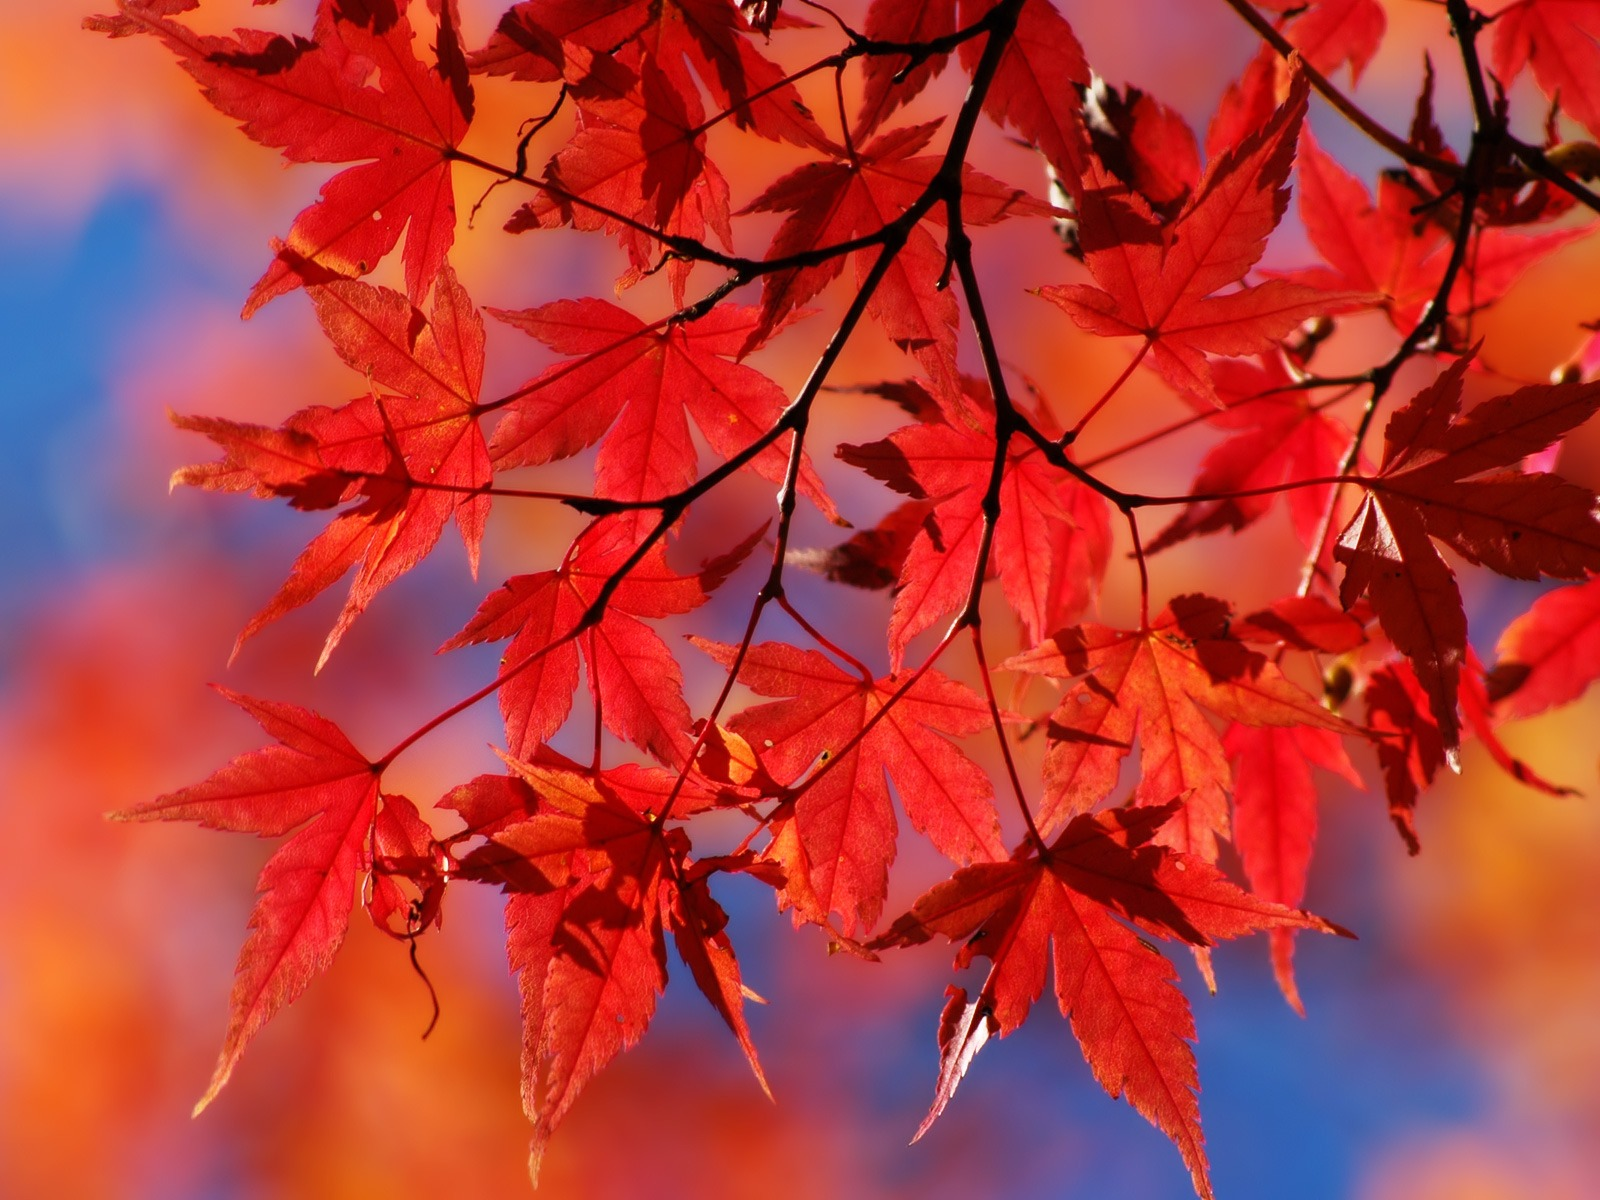 http://1.bp.blogspot.com/-x8N3ug02cm4/Txt3stXNR7I/AAAAAAAAAD8/byUTi3ccctw/s1600/red_autumn_leafs_wallpaper_autumn_nature_wallpaper_1600_1200_1504.jpg